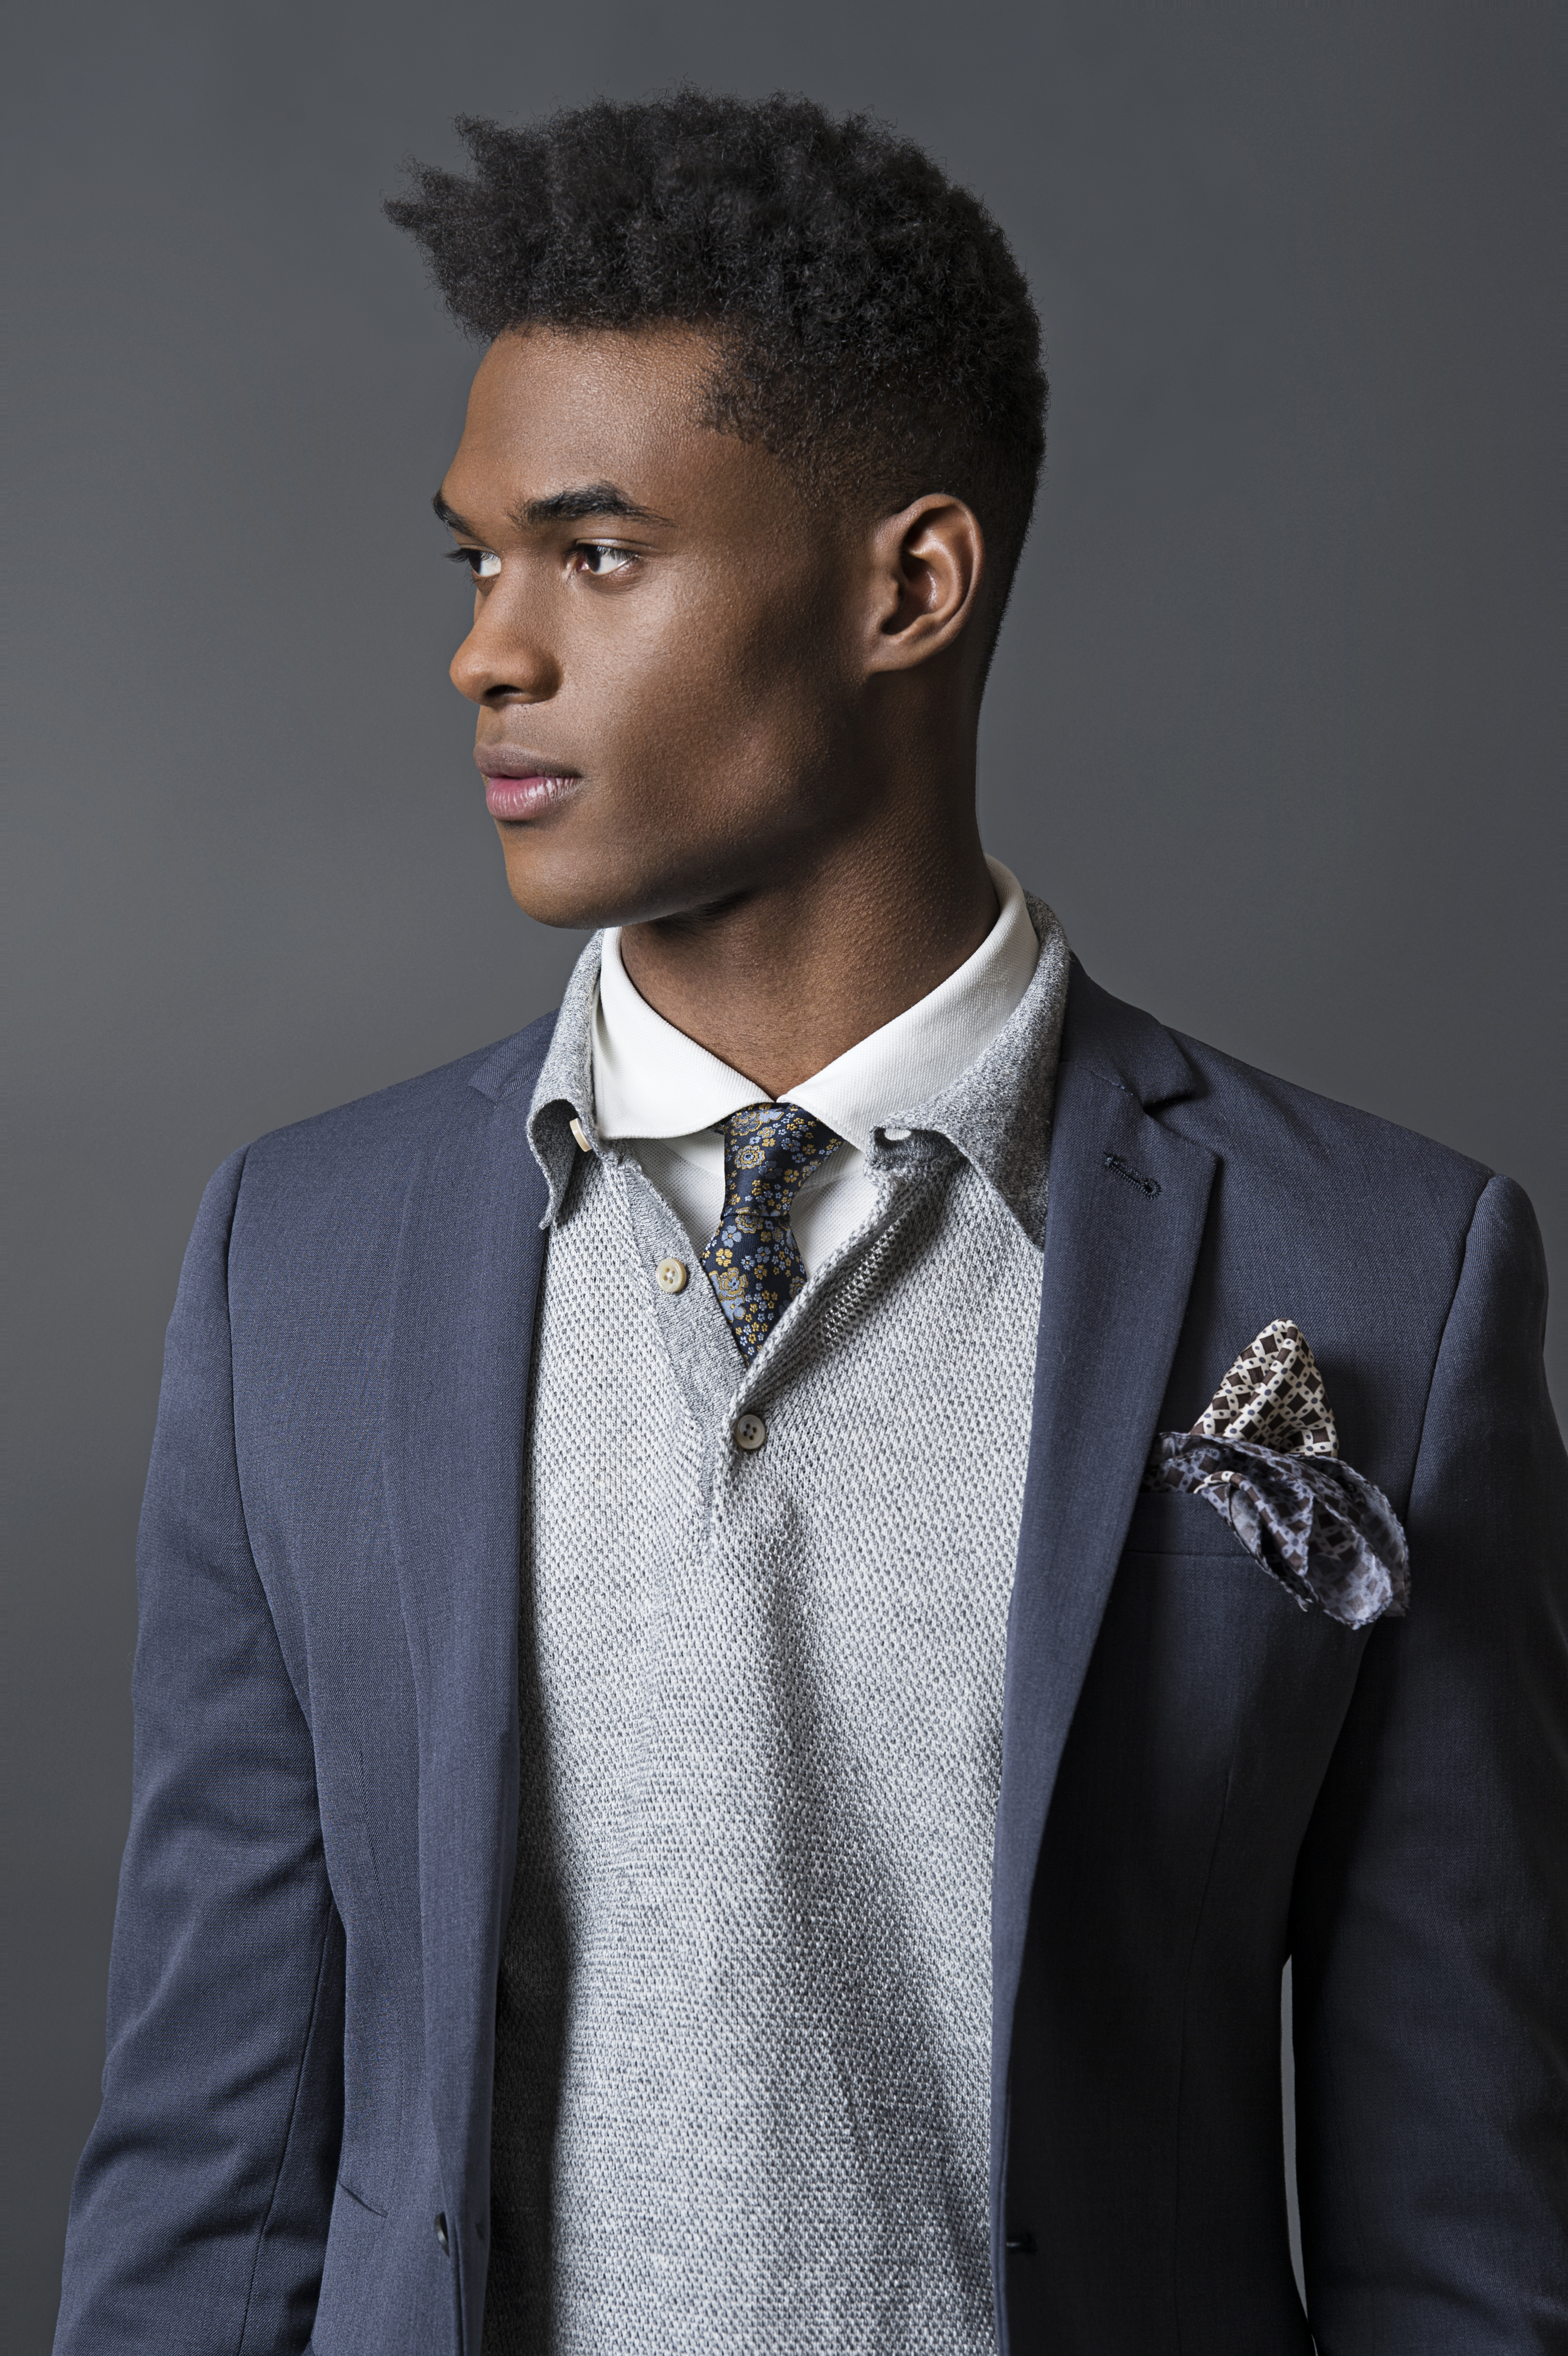 Urban Block Collection from Esquire: Merging Men's Classic Styling with Modern Looks